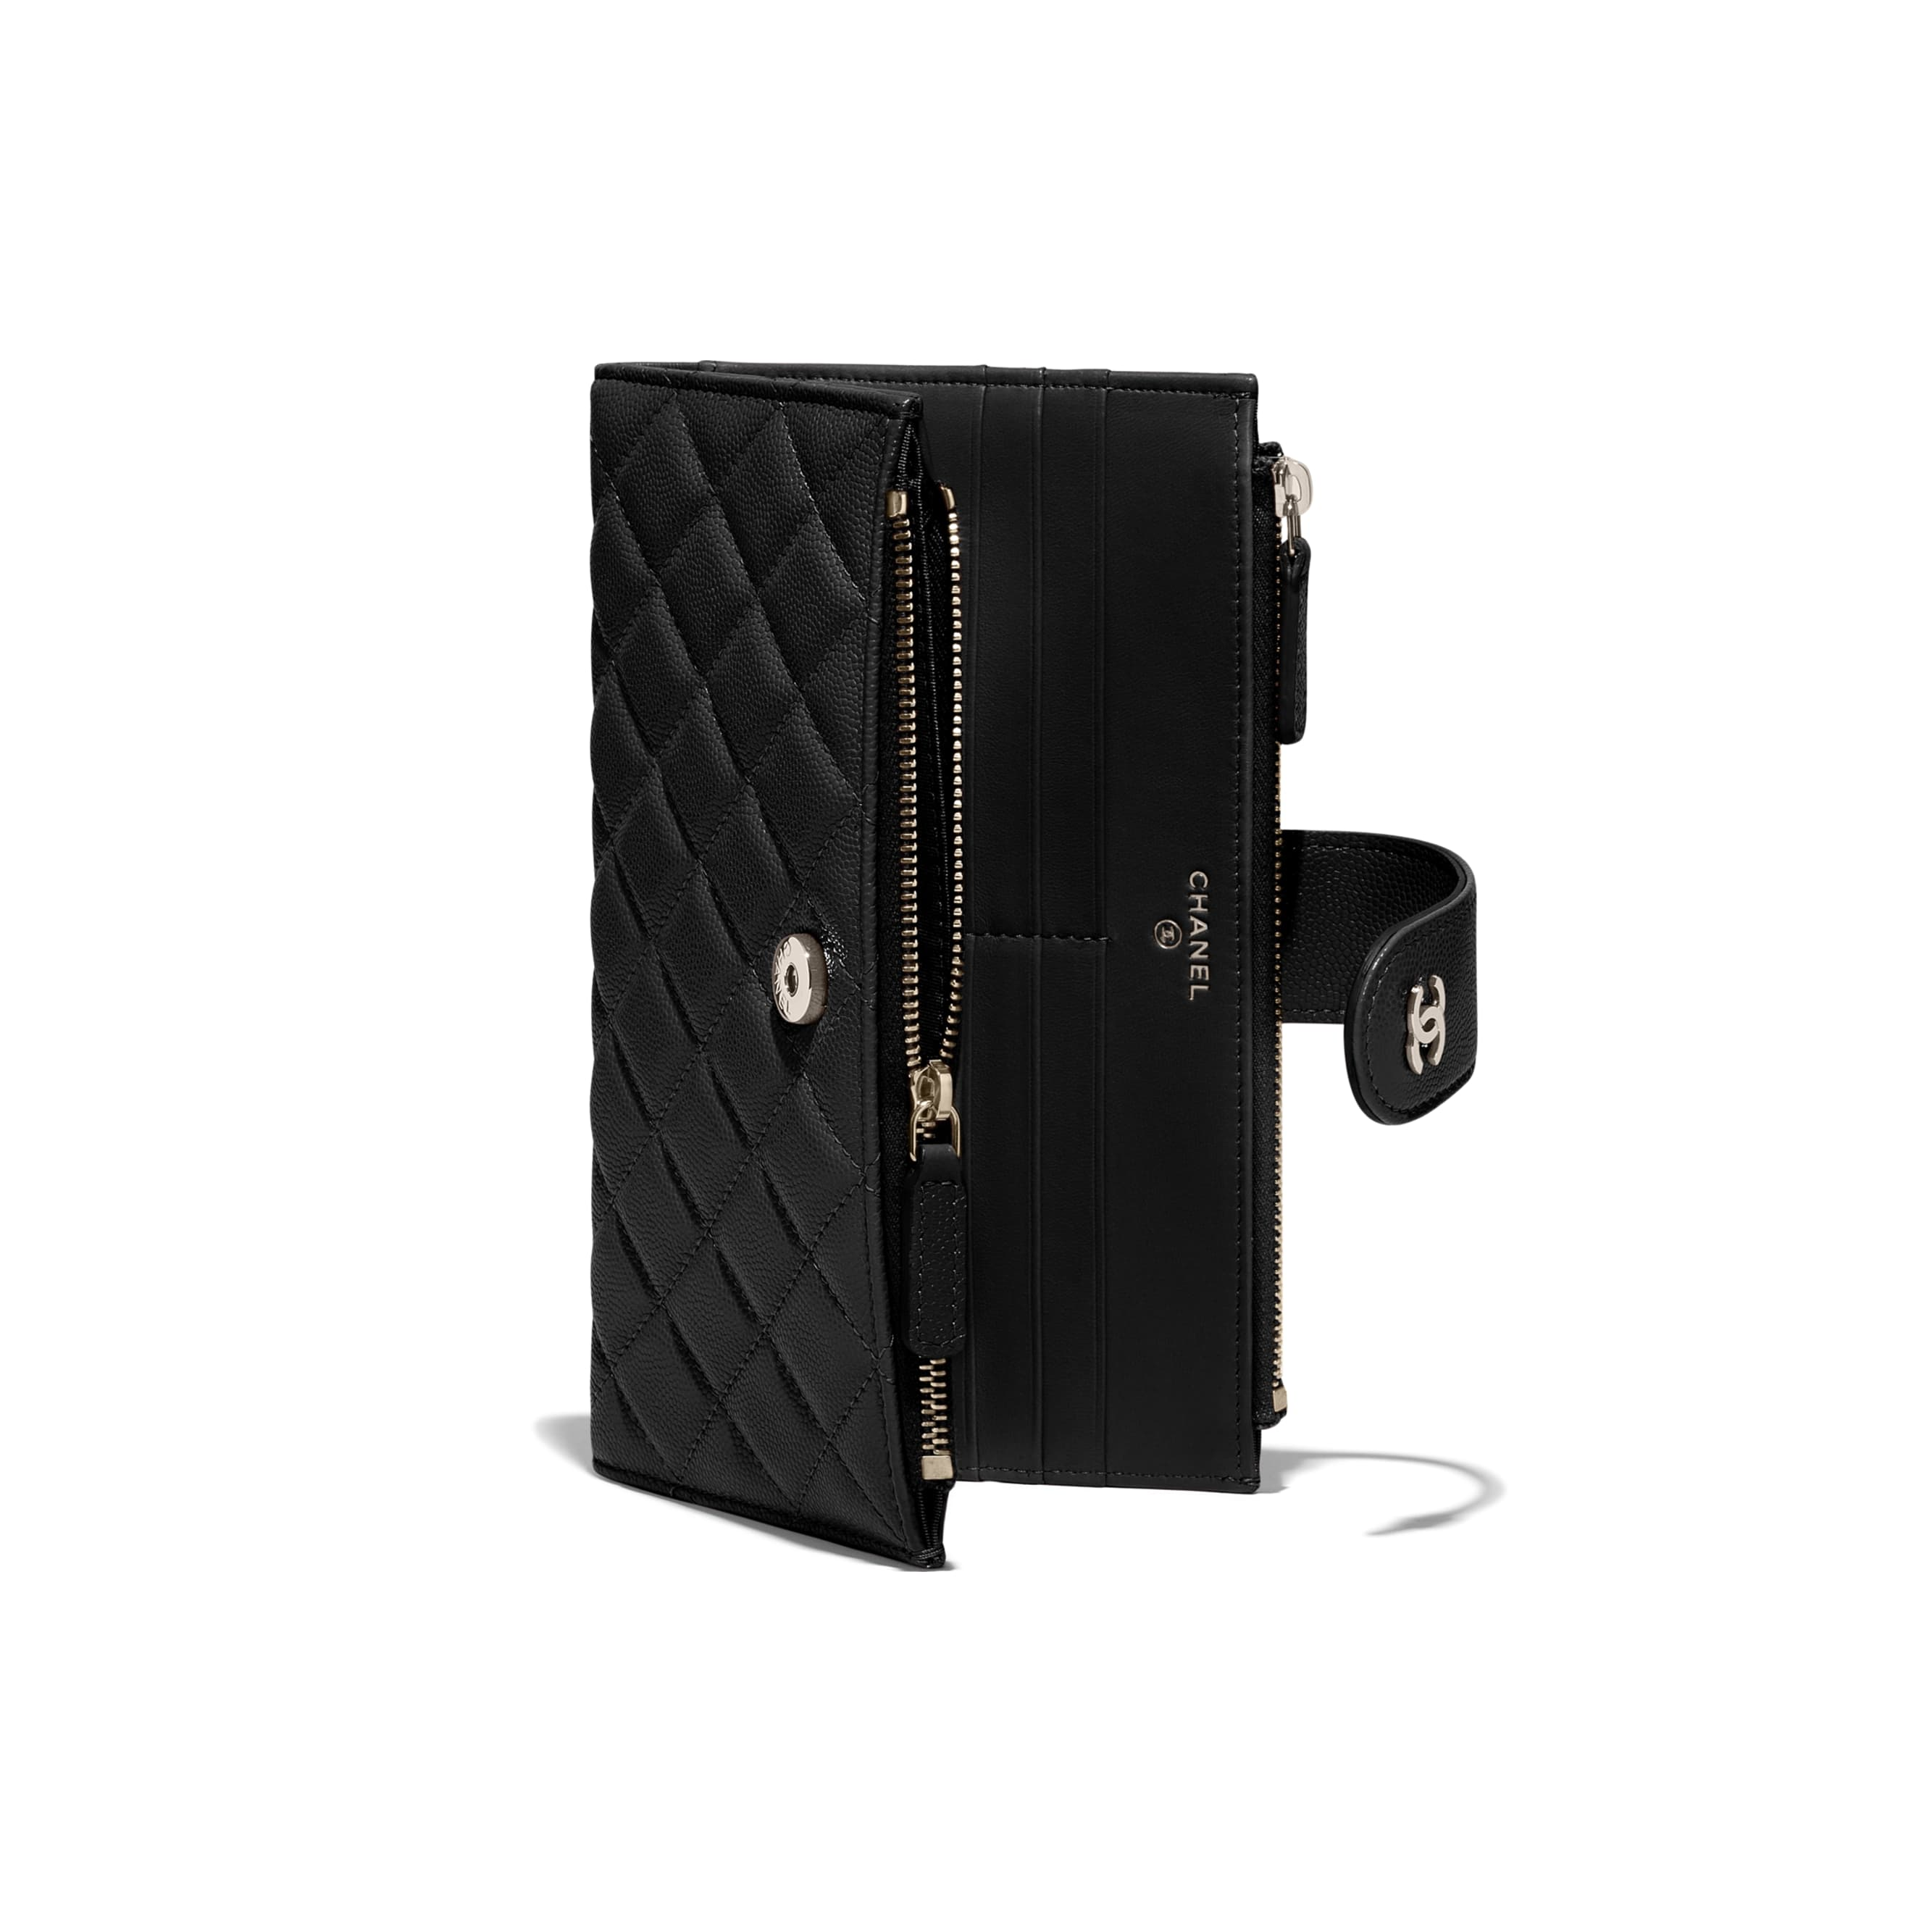 Classic Long Zipped Wallet - Black - Grained Shiny Calfskin & Gold-Tone Metal - CHANEL - Extra view - see standard sized version